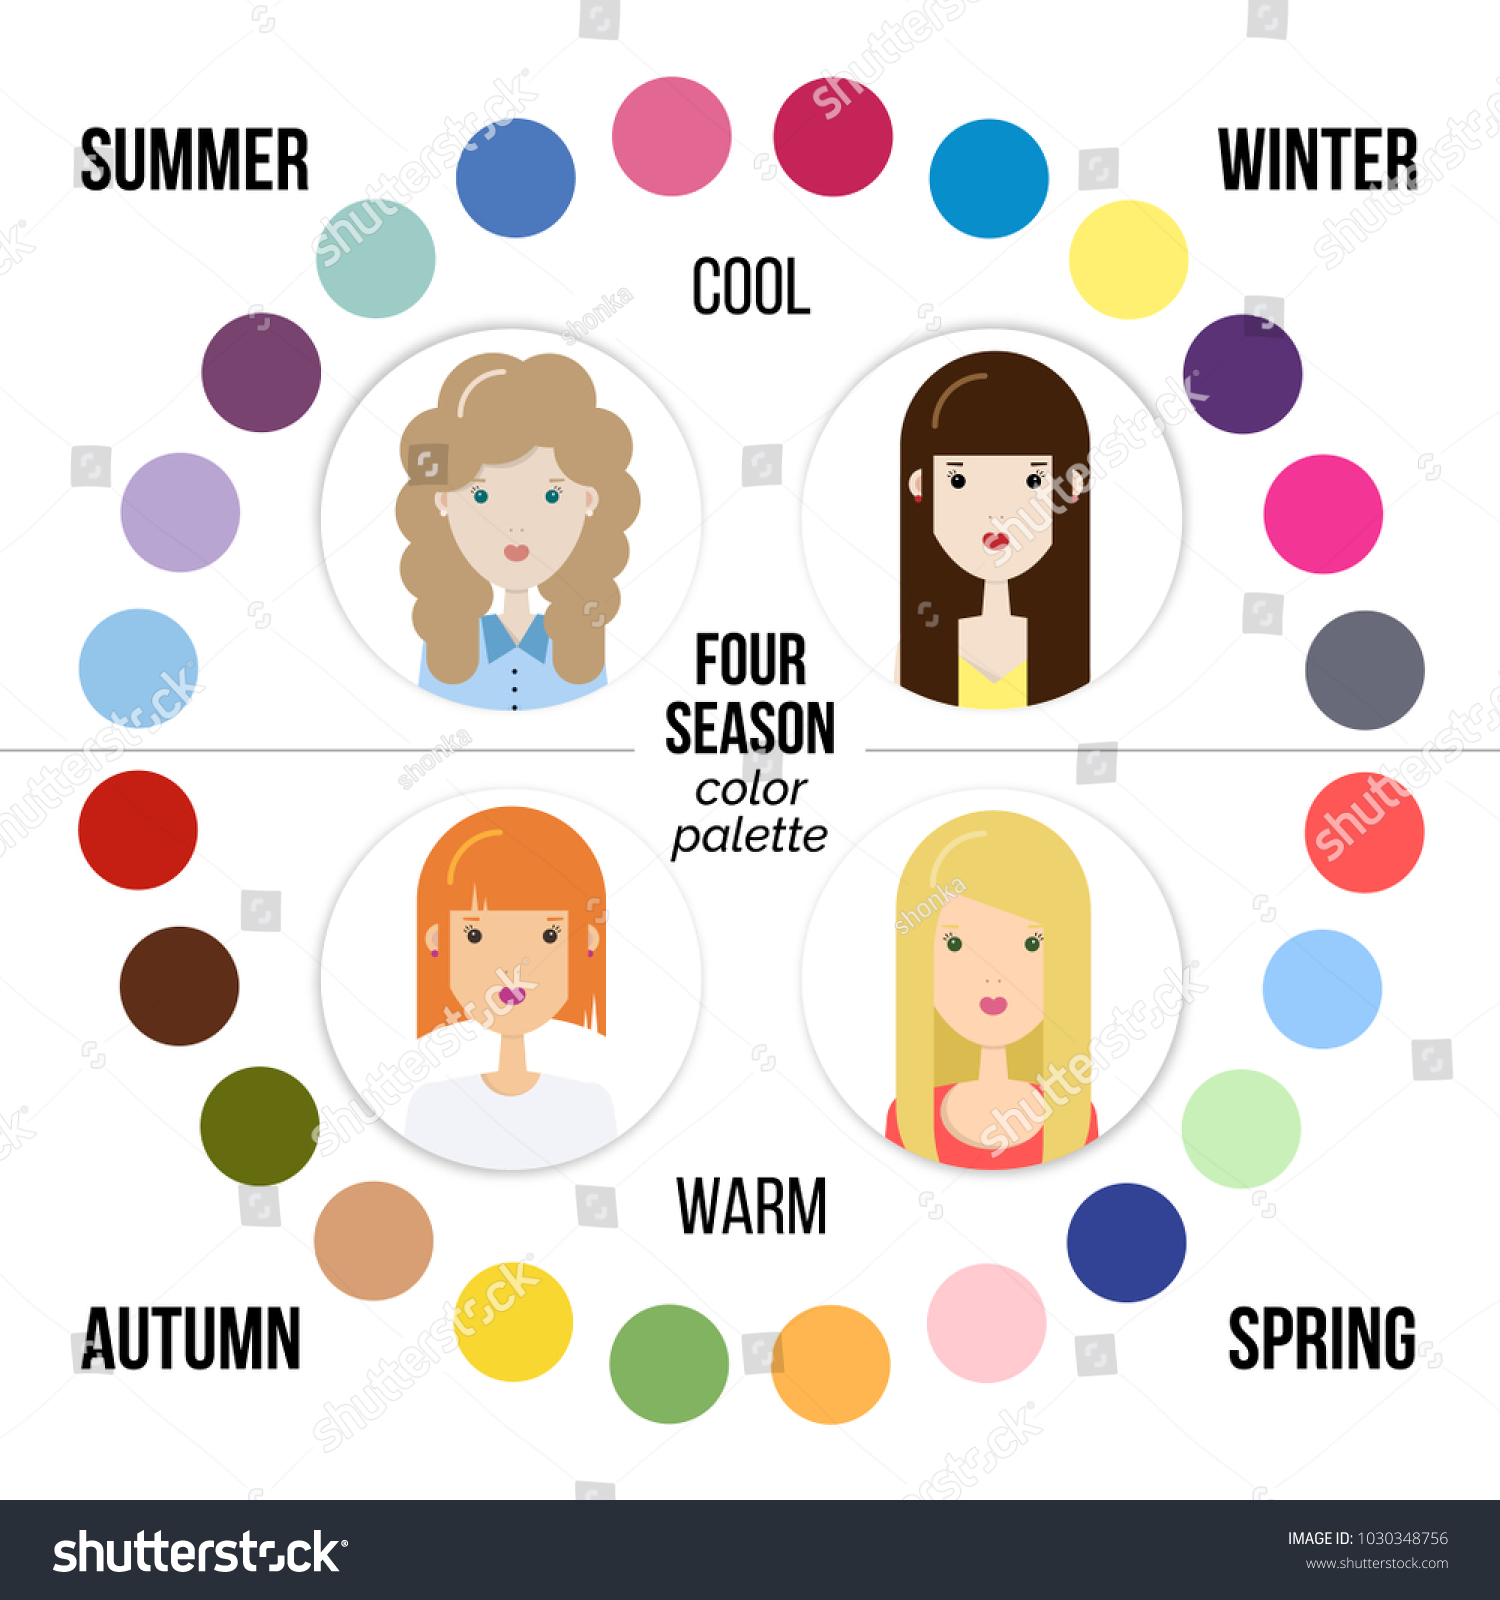 Shutterstock   Seasonal Color Analysis. Best Colors for Winter, Spring, Summer and Autumn color type